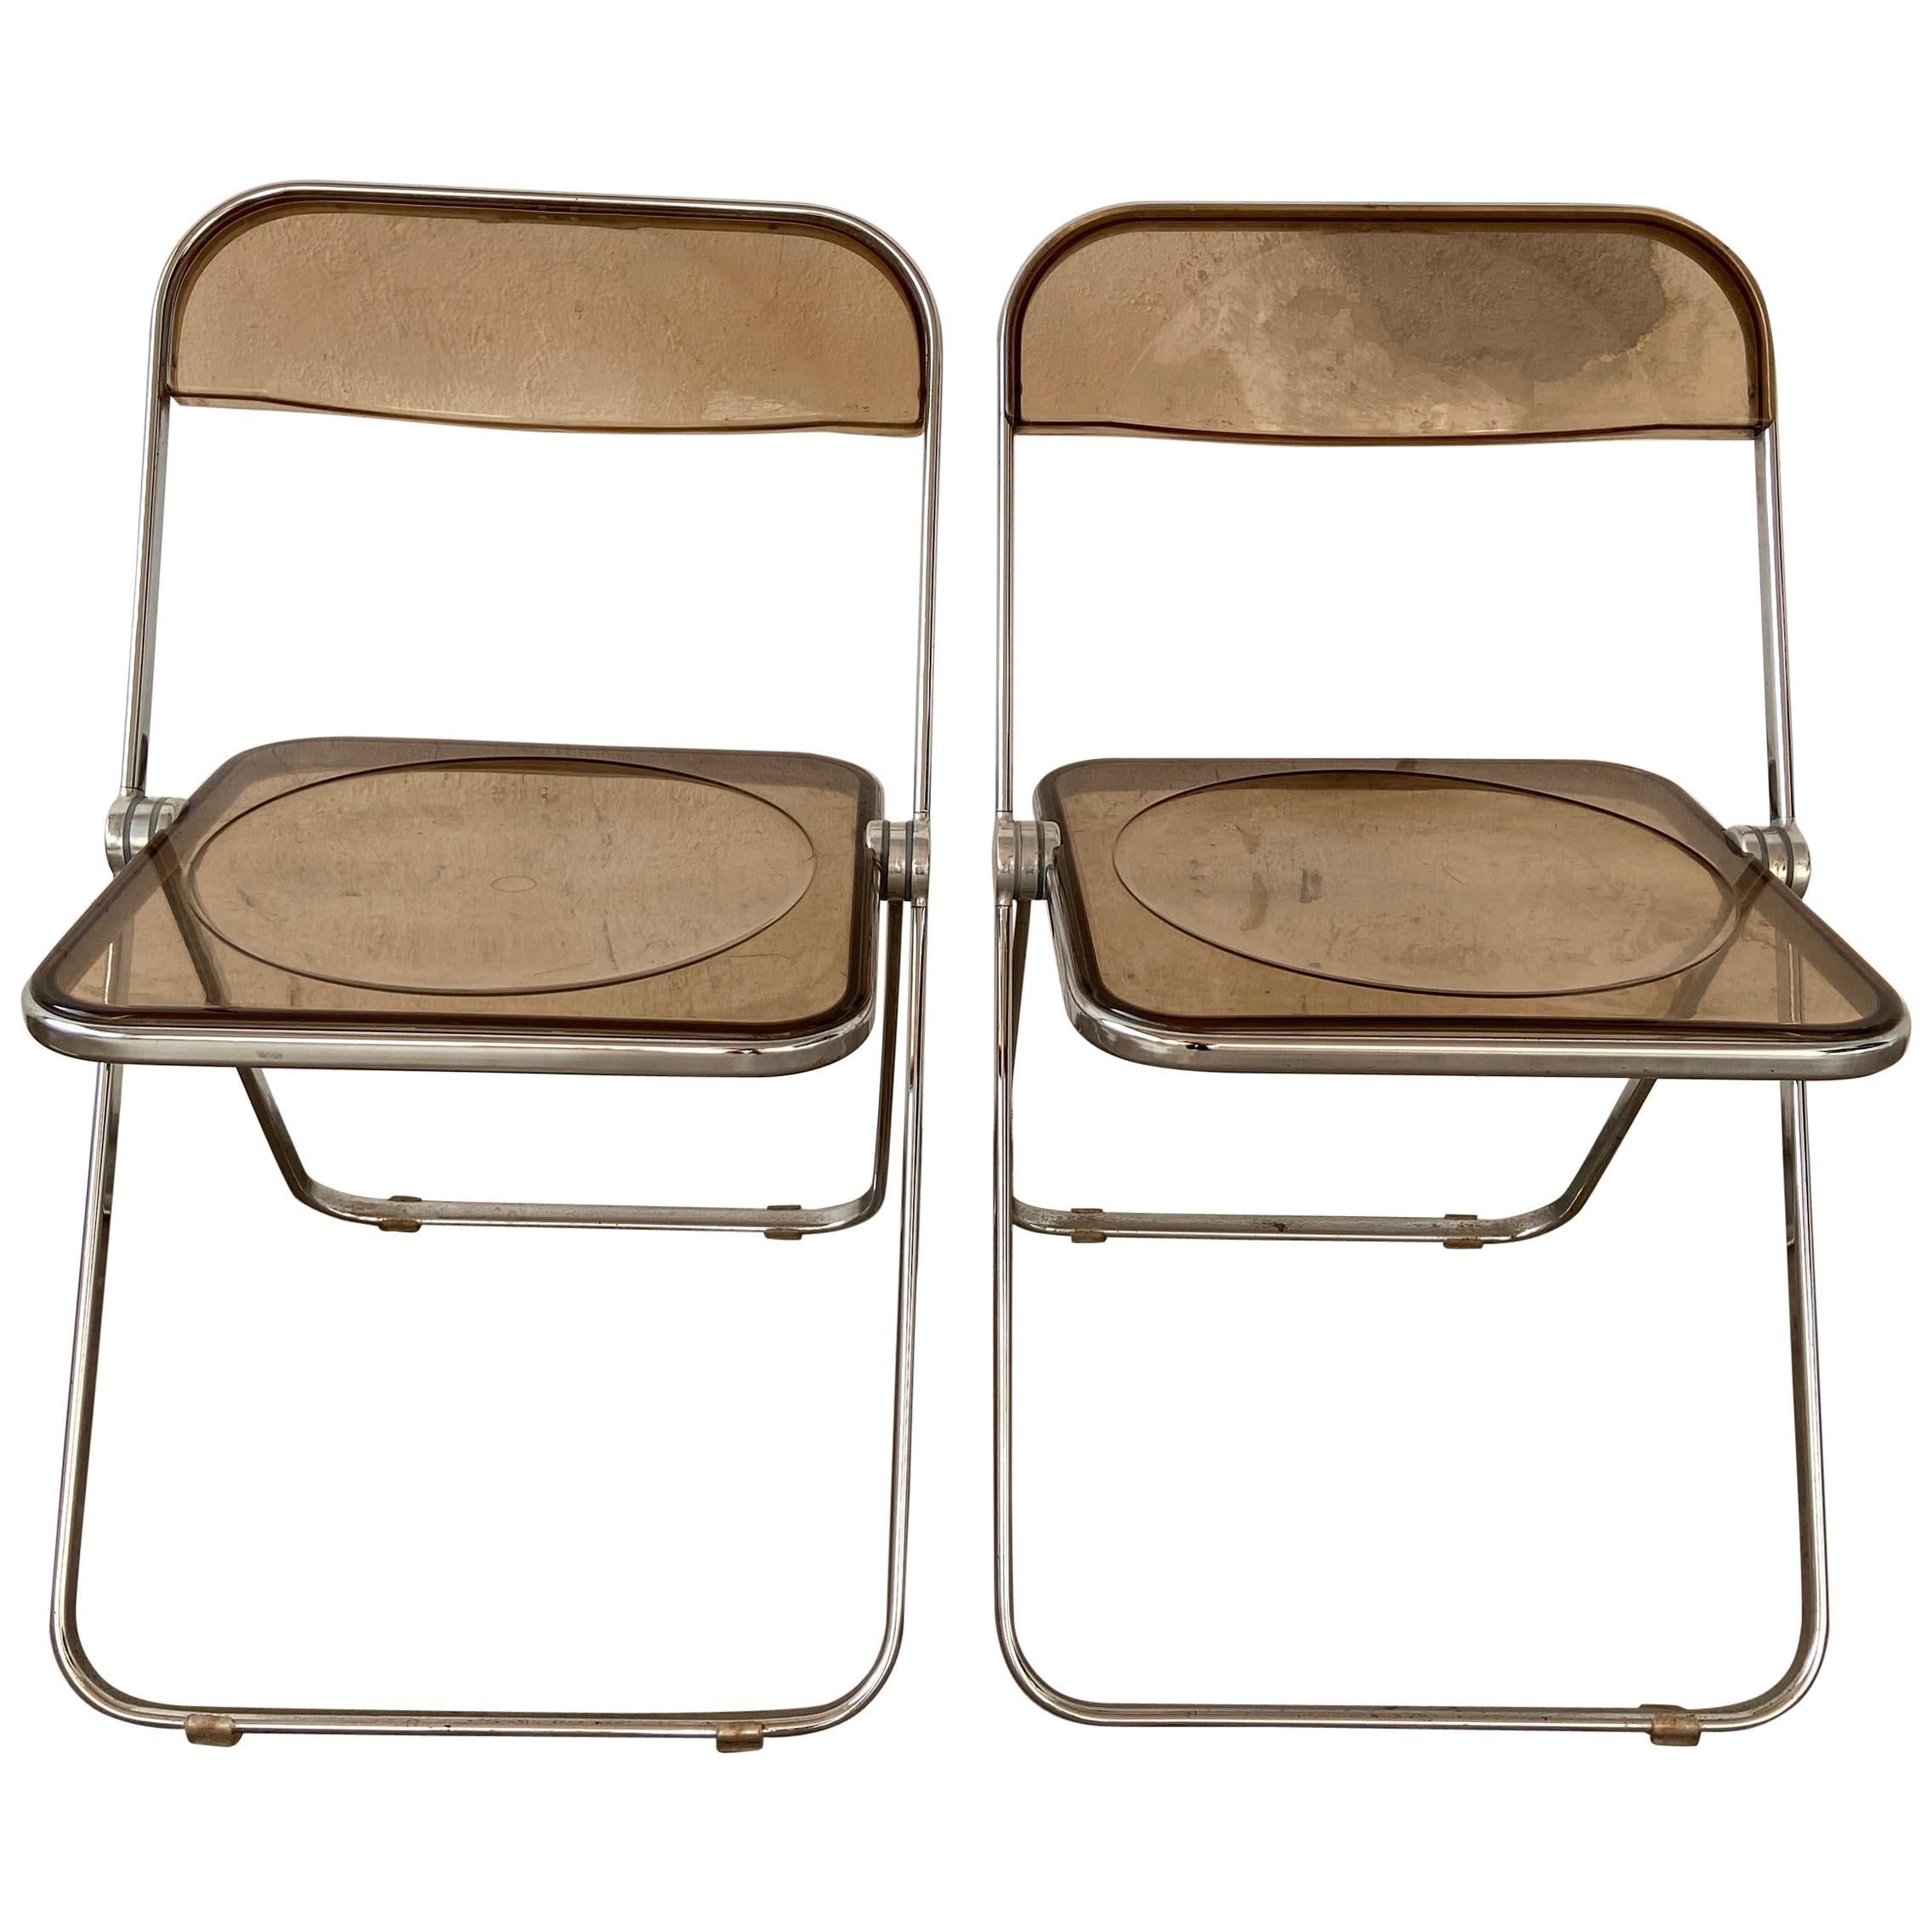 "Mid-Century Modern Italian Pair of Giancarlo Piretti ""Plia"" Folding Chairs 1970s"